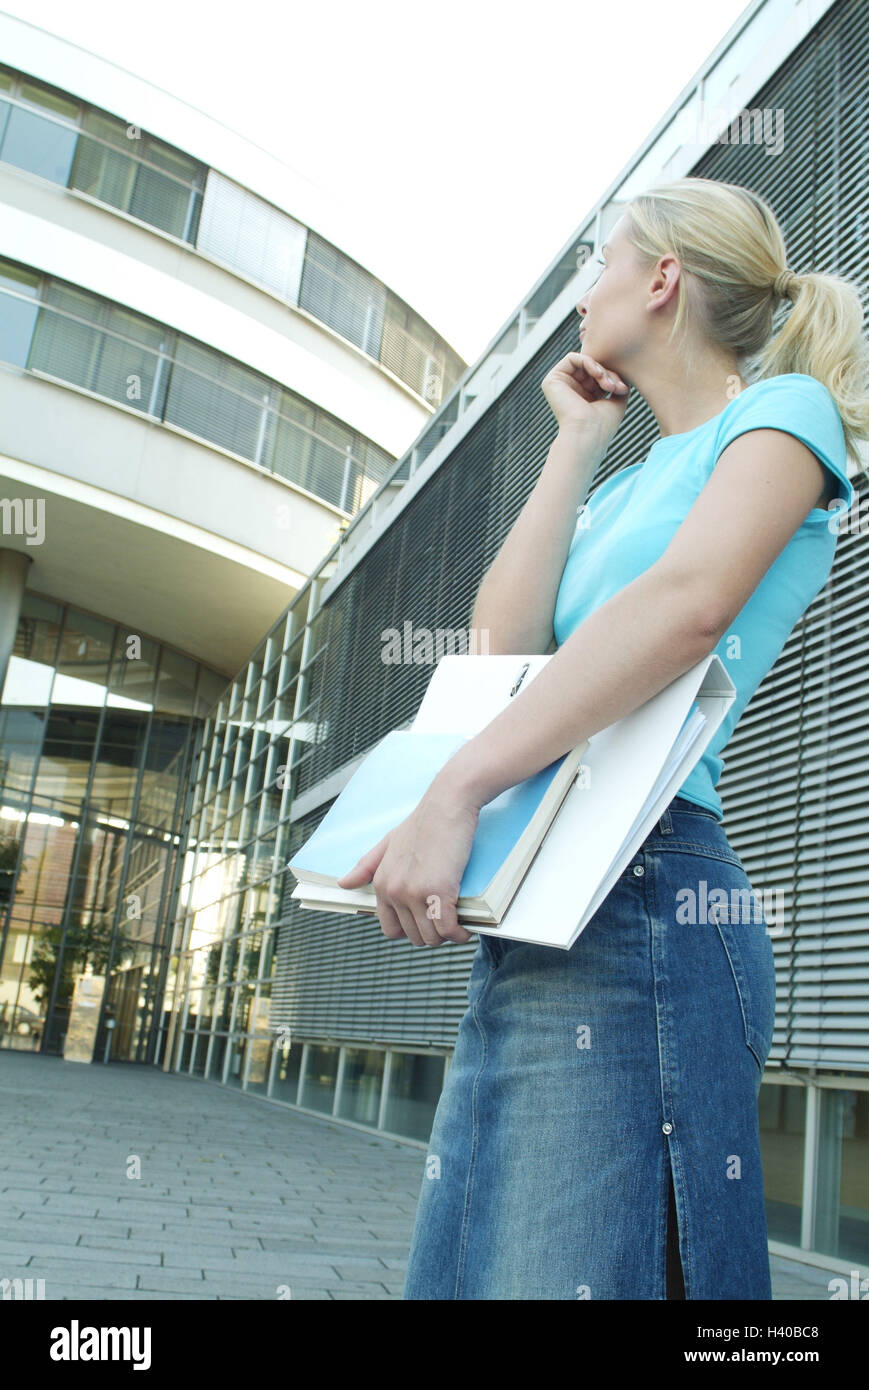 Woman, young, doubts, bases, view, background, office building, 23 years, occupation, professional life, education, - Stock Image